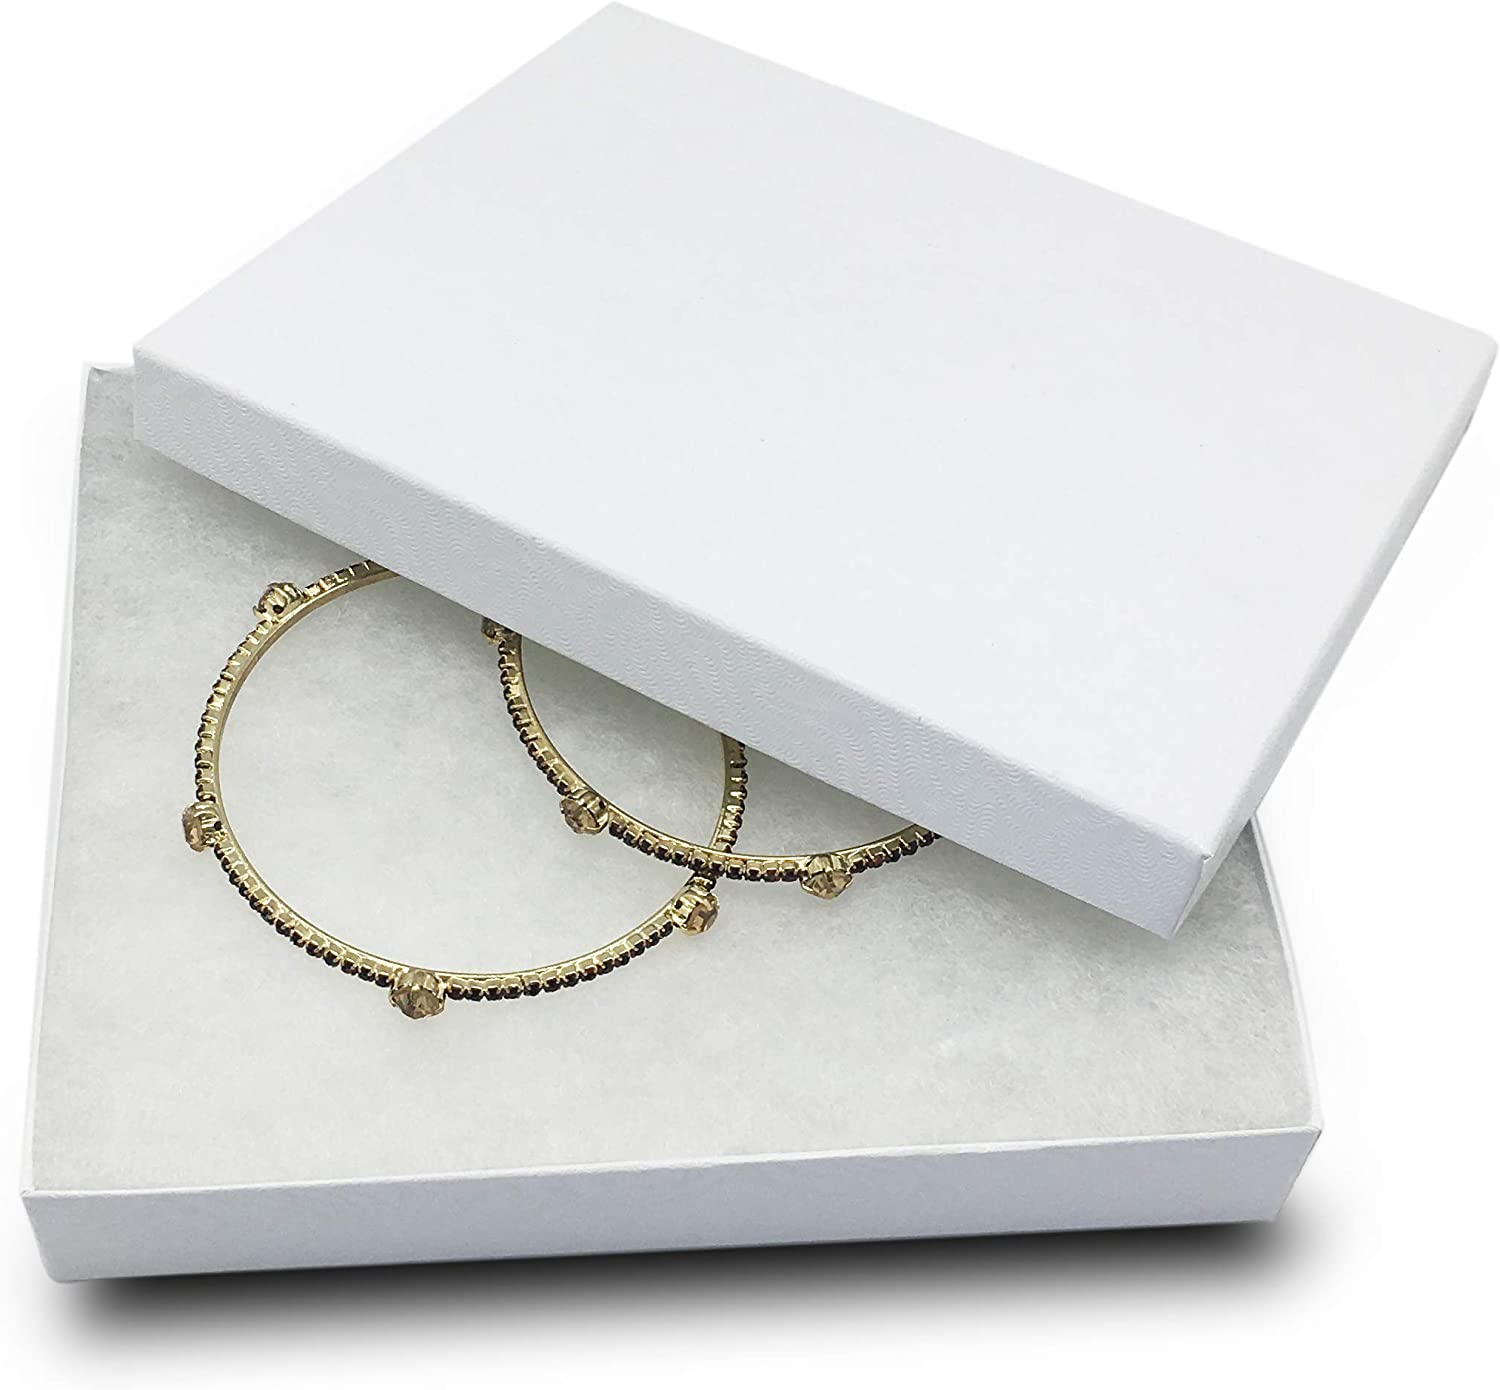 Our shop most popular TheDisplayGuys 25-Pack Ranking TOP2 #65 Cotton Cardboard Paper Filled Jewelry